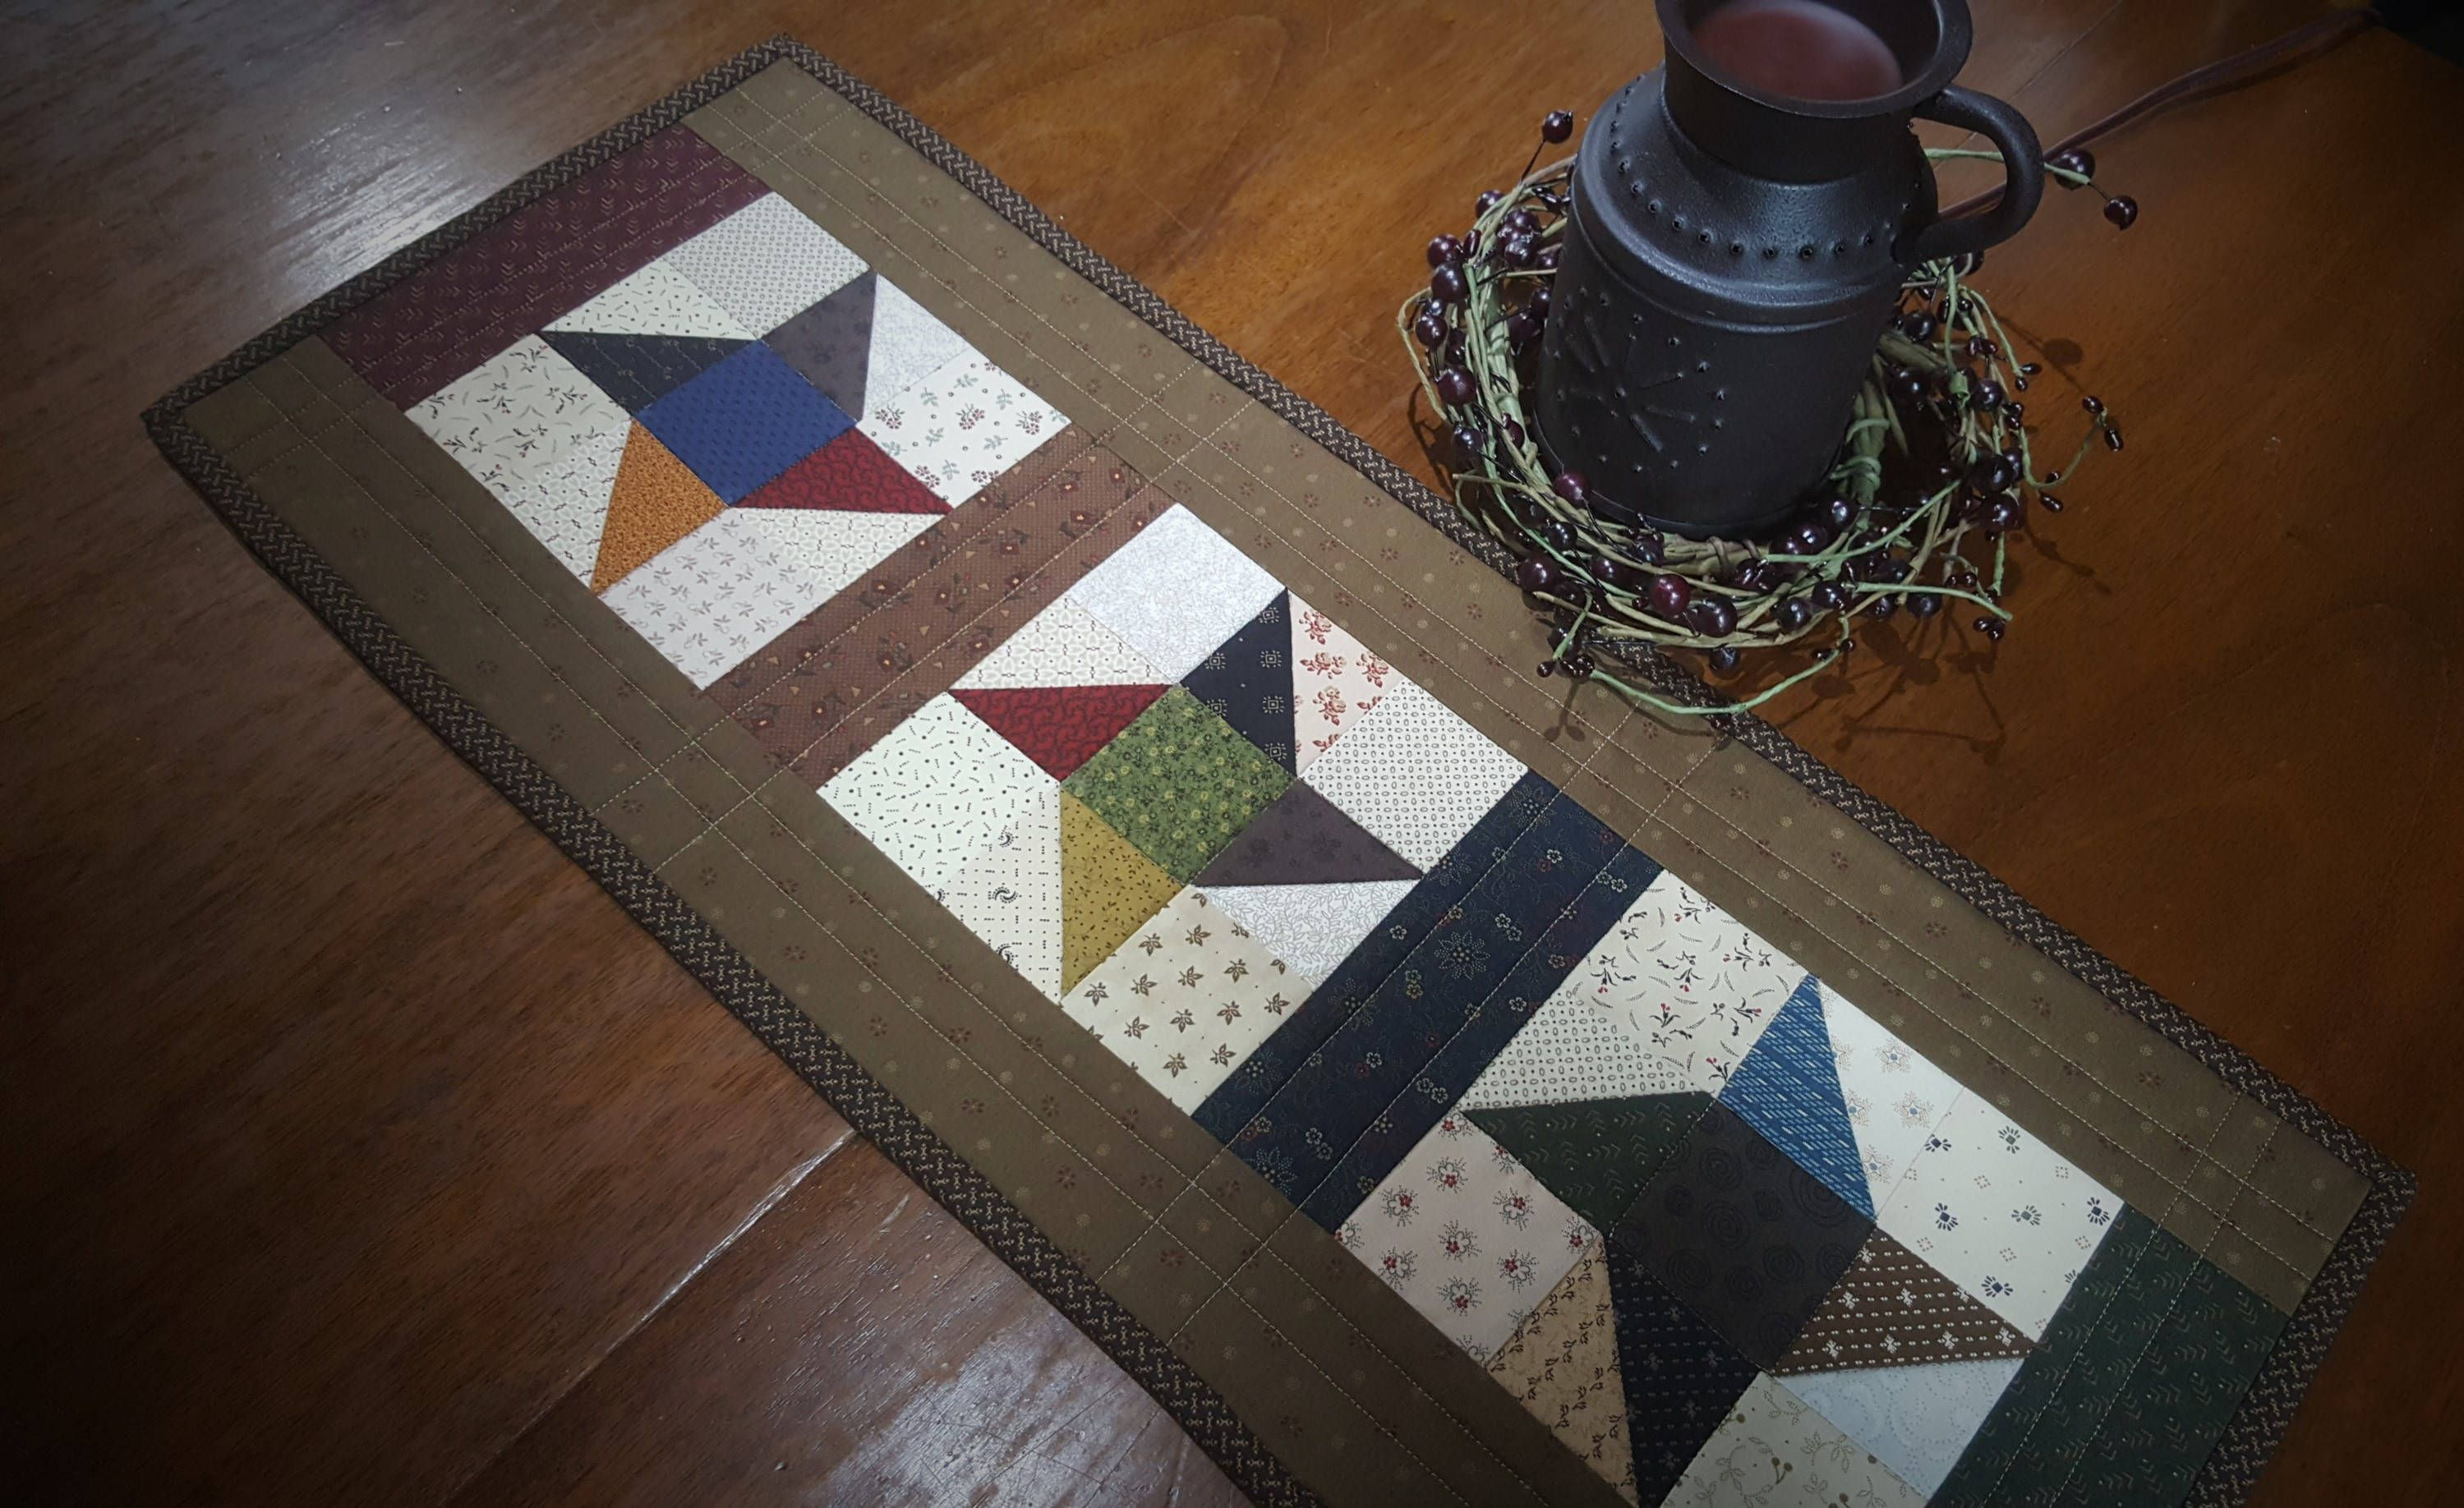 Charmant Quilted Table Runner / Quilted Friendship Star Table Runner/ Scrappy Table  Runner/ Primitive Table / Country Quilted Table Runner/ Handmade By Couu2026